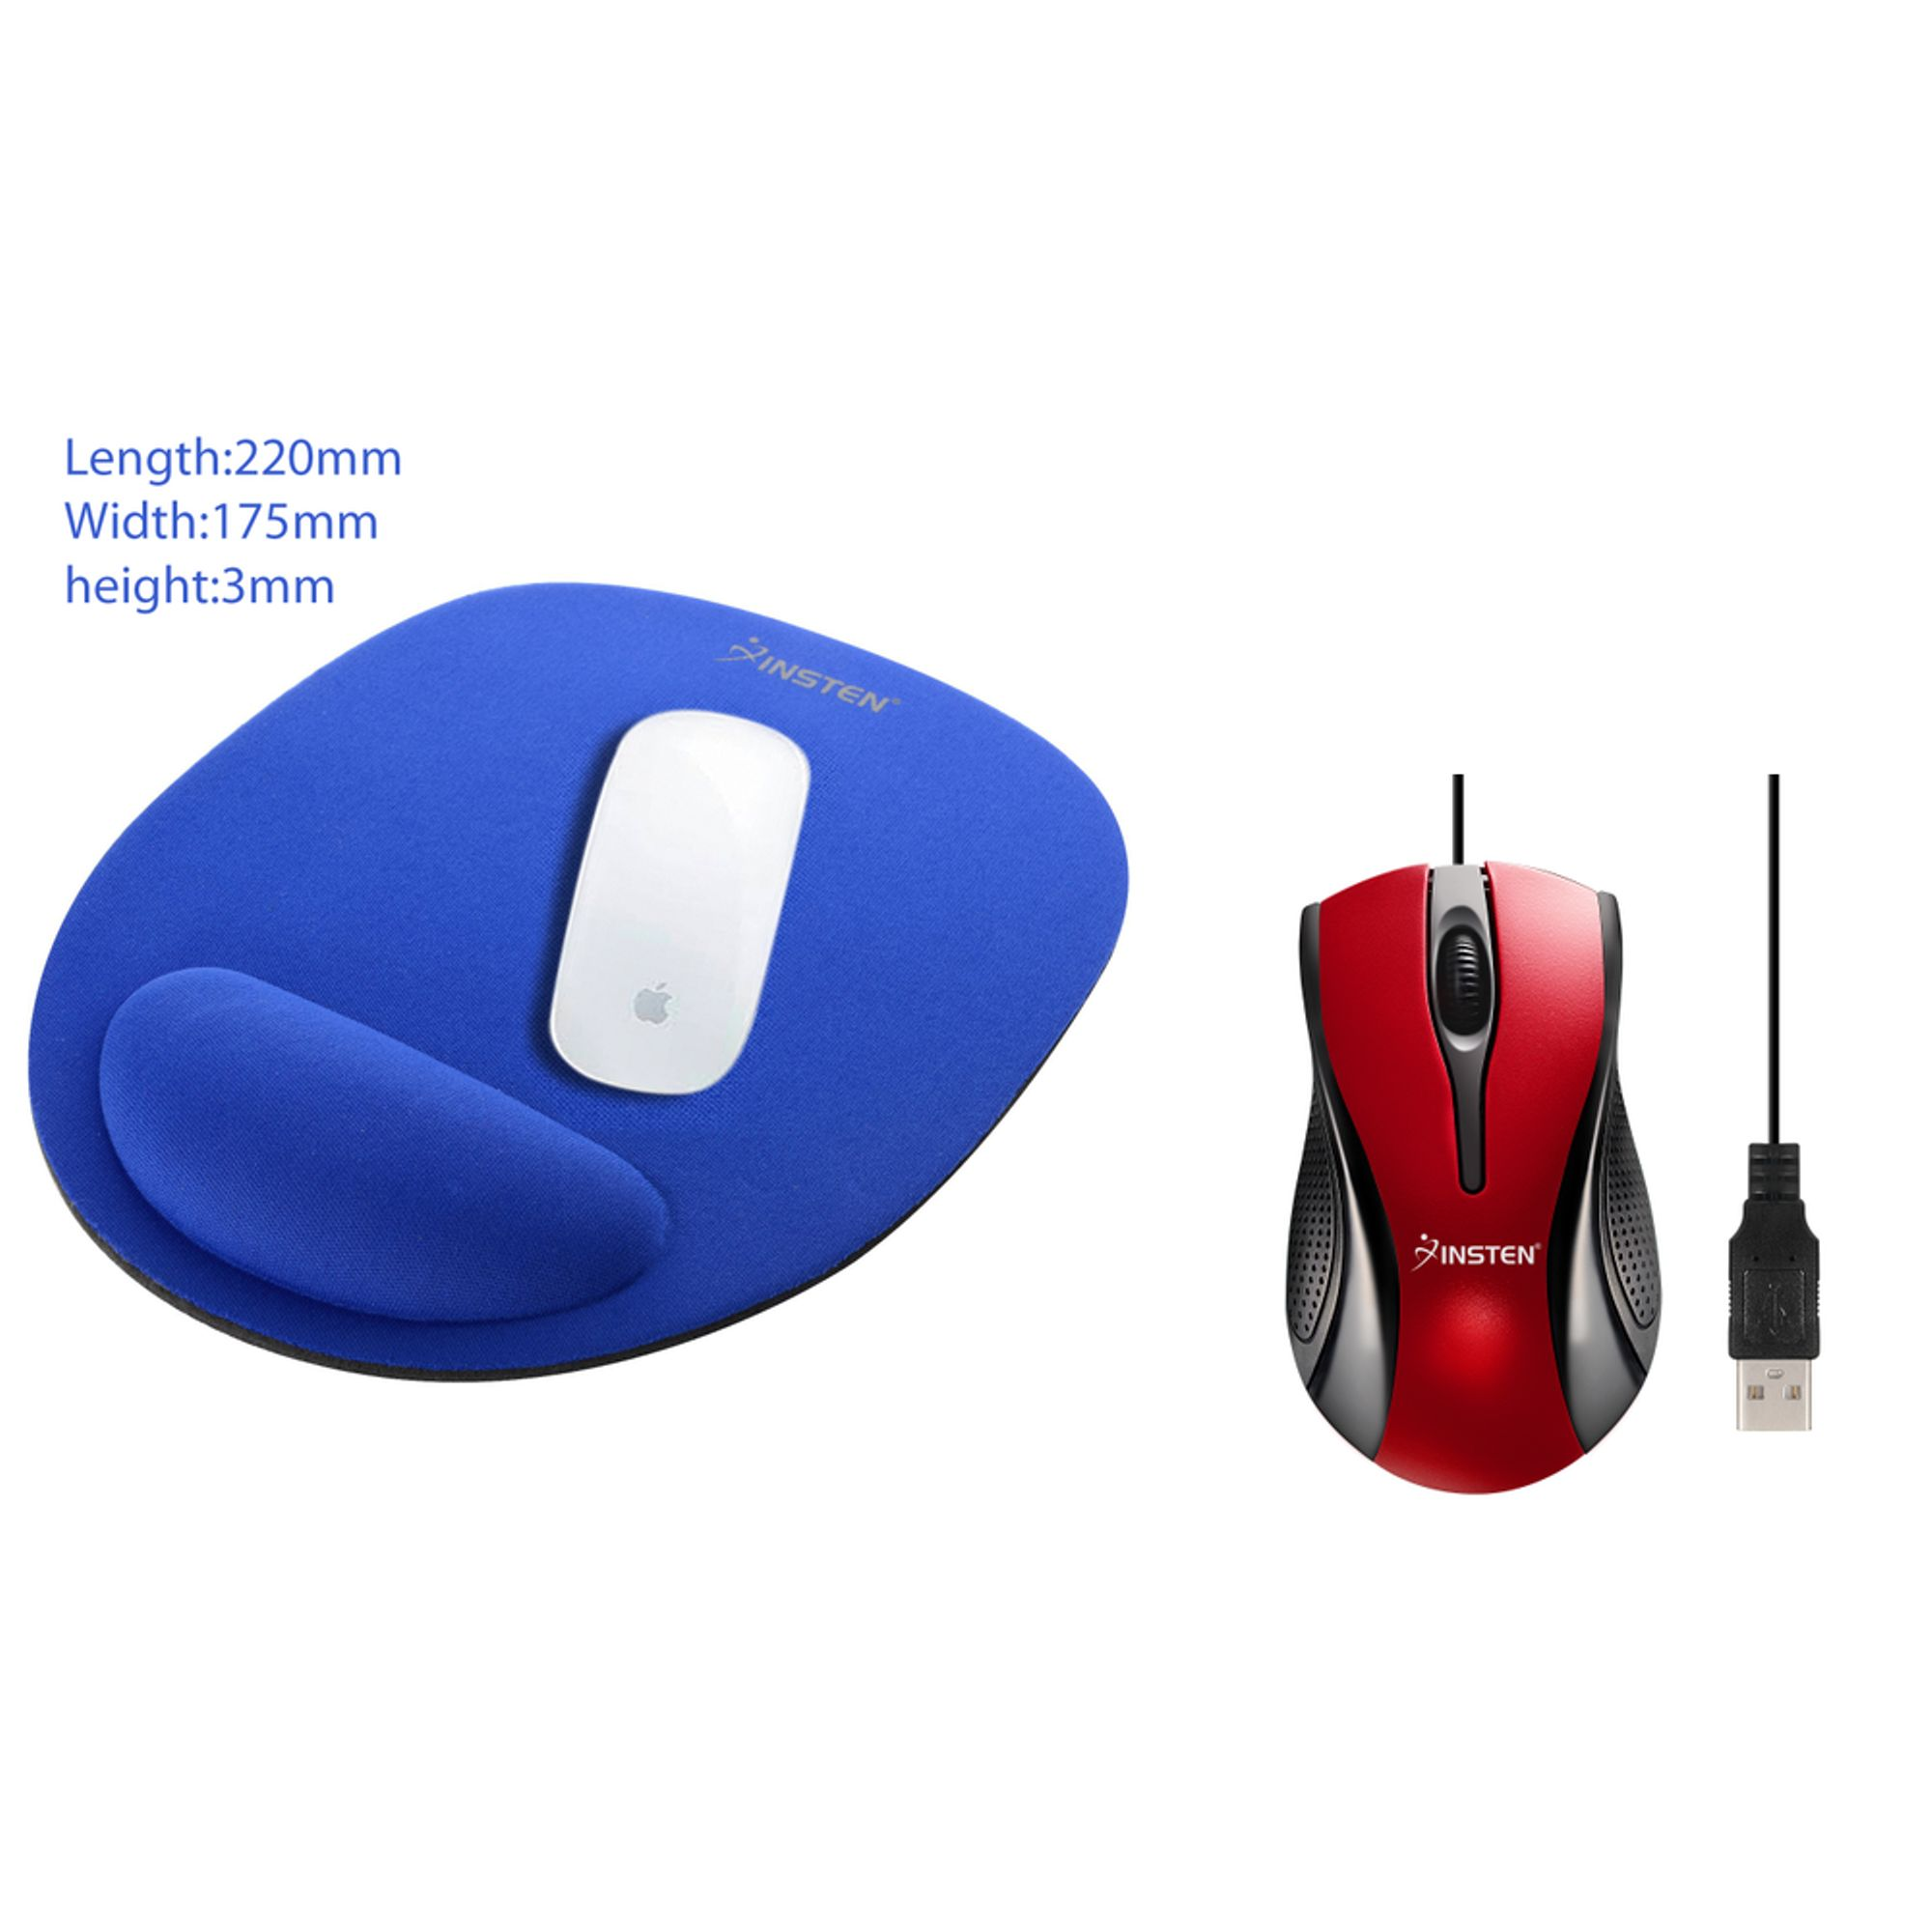 Insten Blue Wrist Comfort MousePad Mouse Pad with Wrist Rest Support + Red Black USB Optical Scroll Wheel Mouse